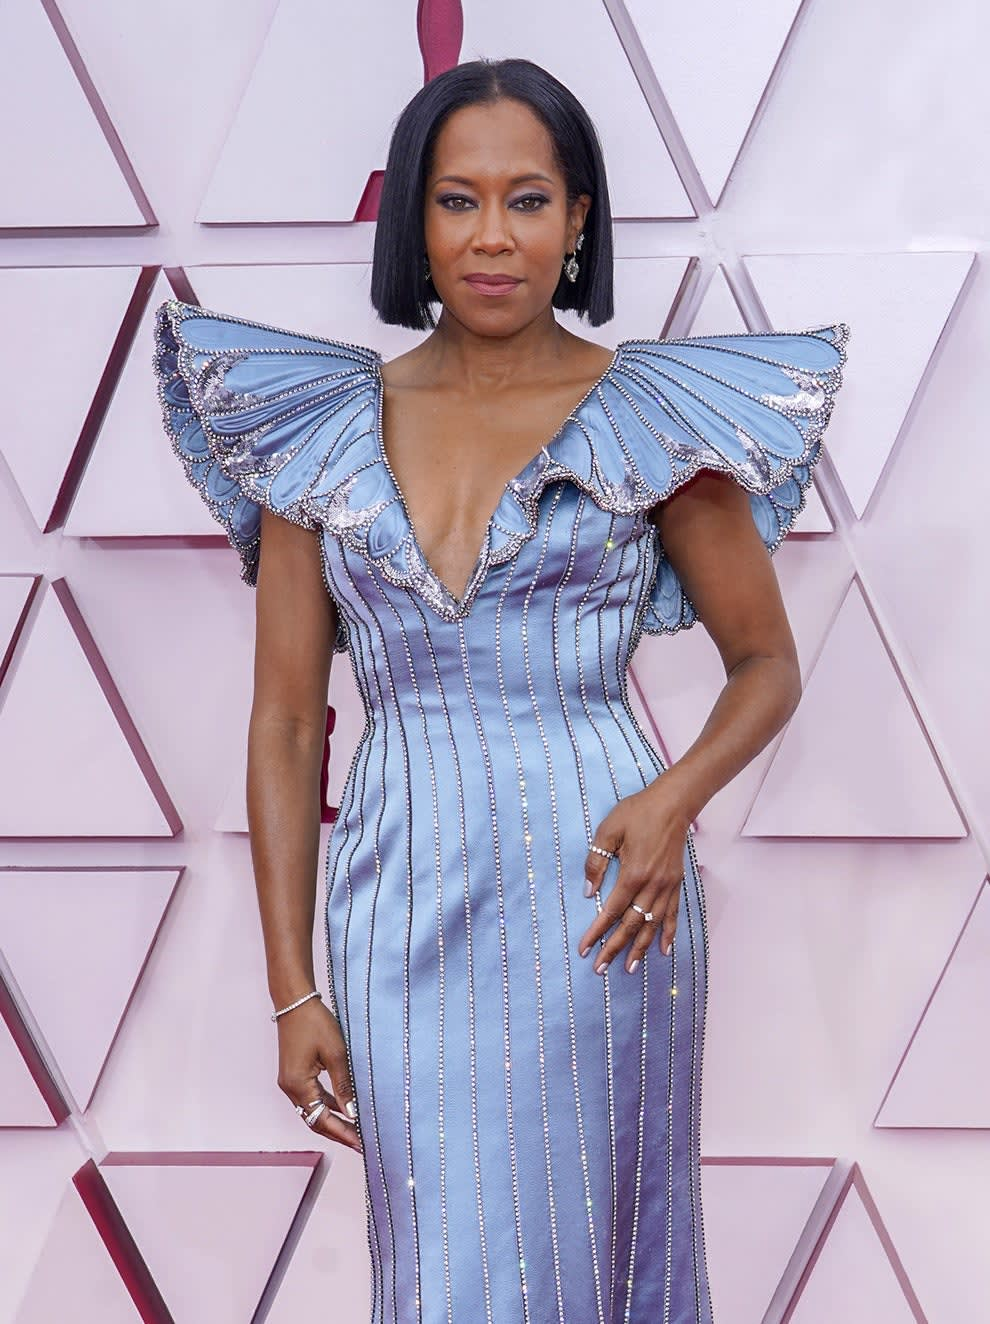 King at the Academy Awards in 2021